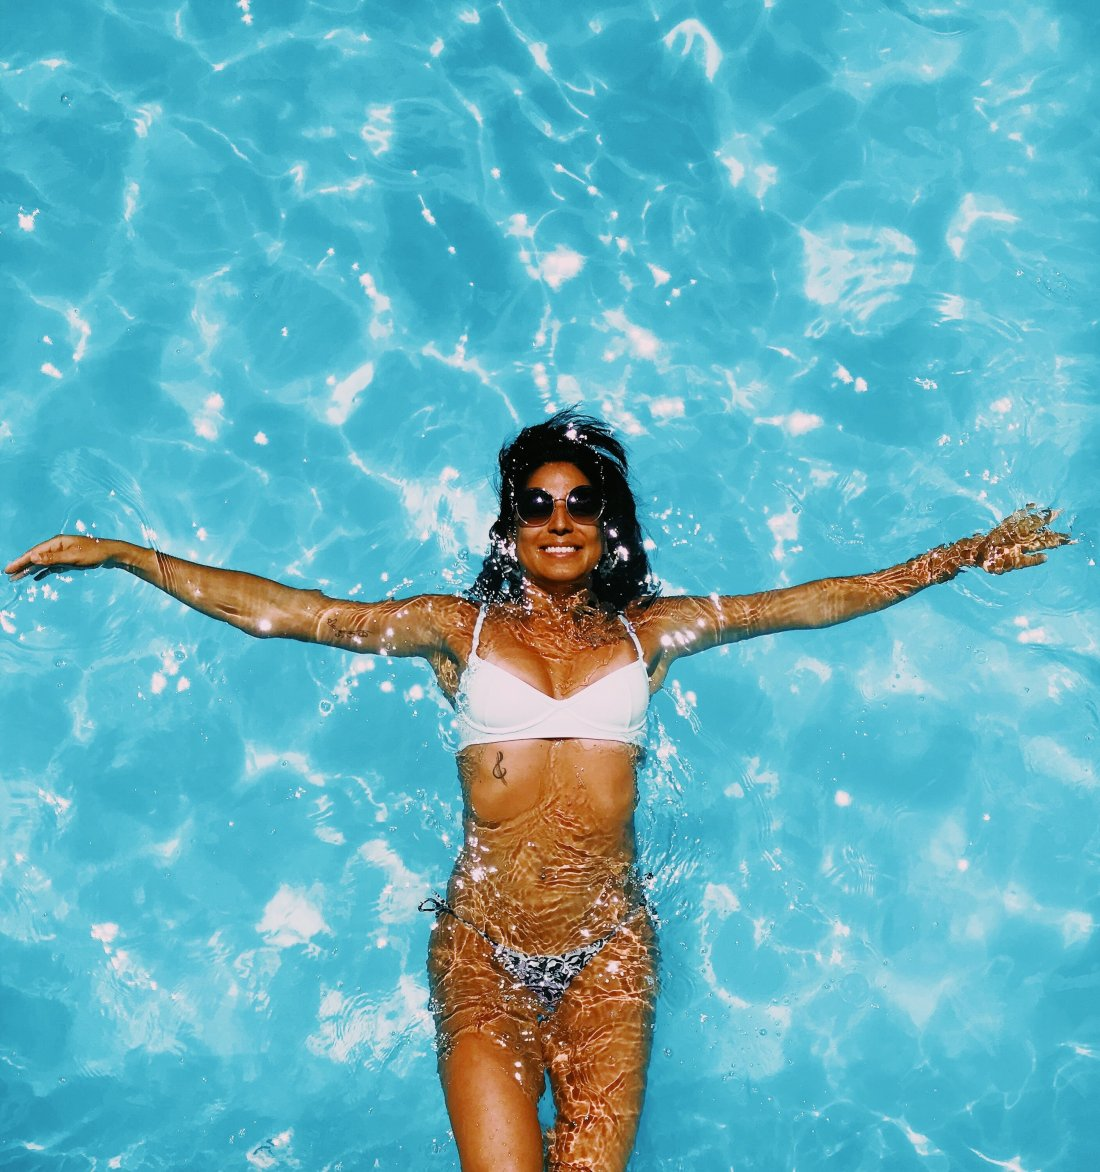 Don't let pool water damage your hair this summer, Read these helpful tips on How to Beat Chlorine Damage to Your Skin and Hair.